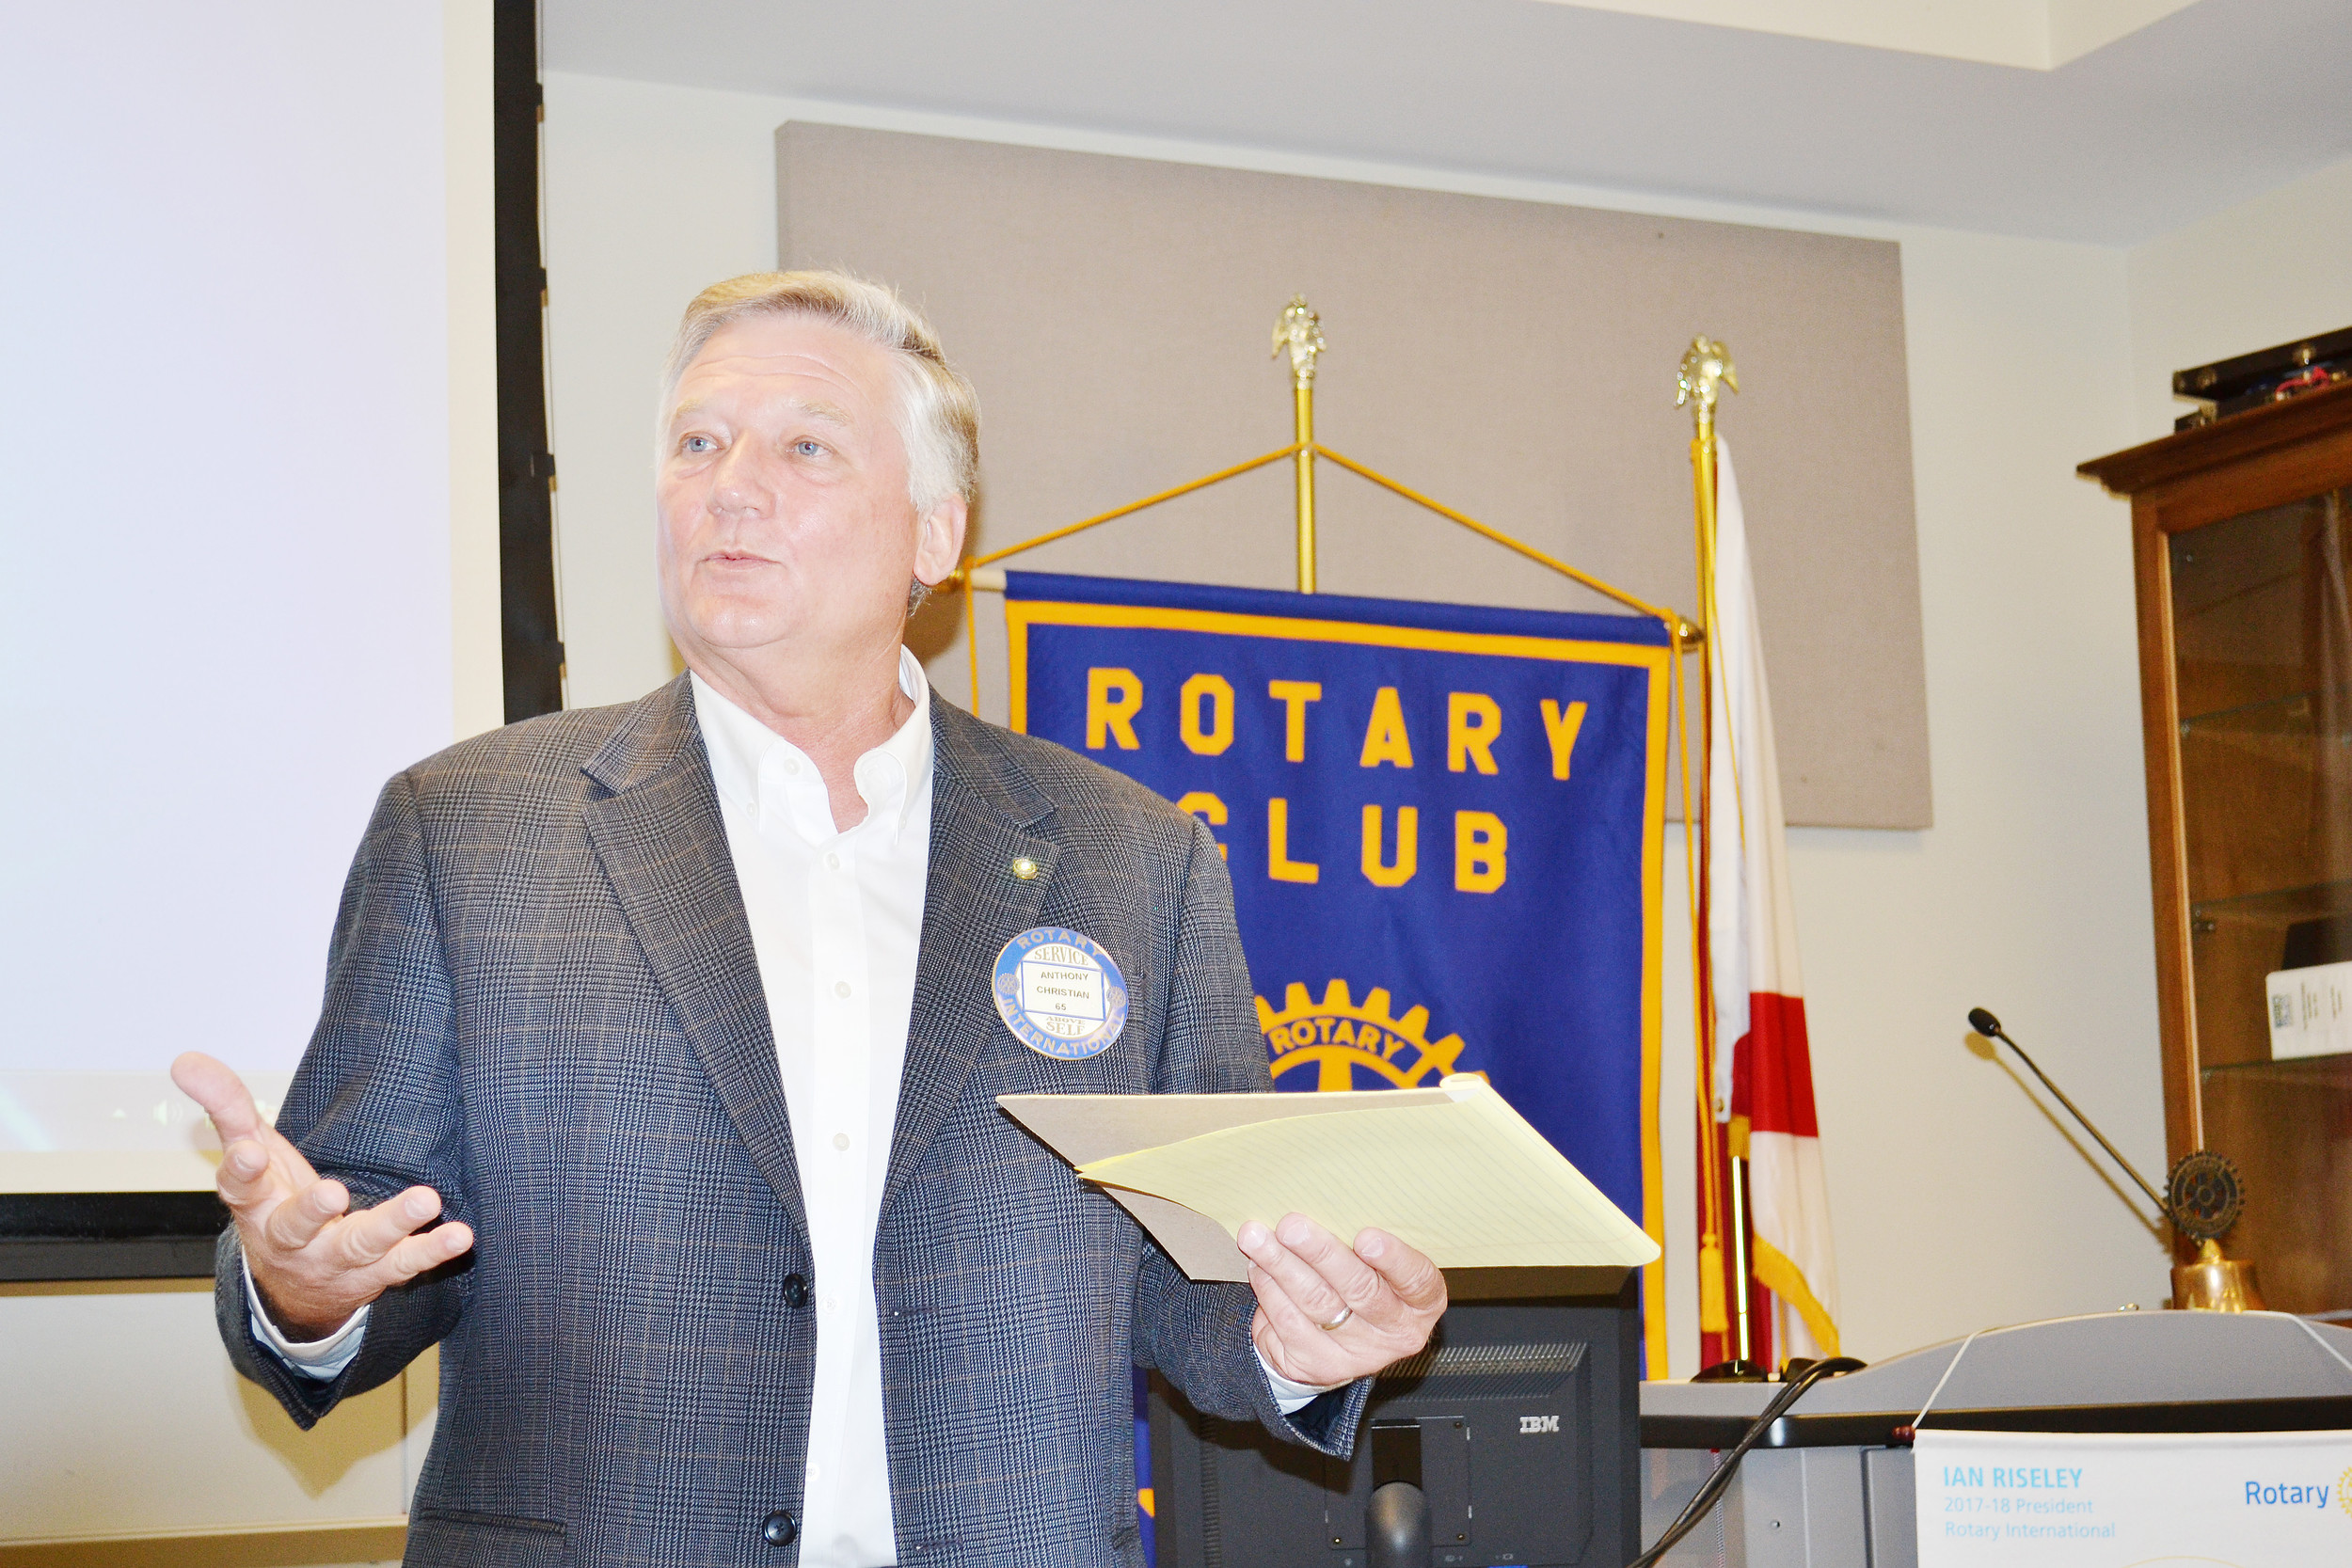 Anthony Christian, the new president of the Jasper Rotary Club, speaks to club members on Tuesday. Daily Mountain Eagle - Ed Howell